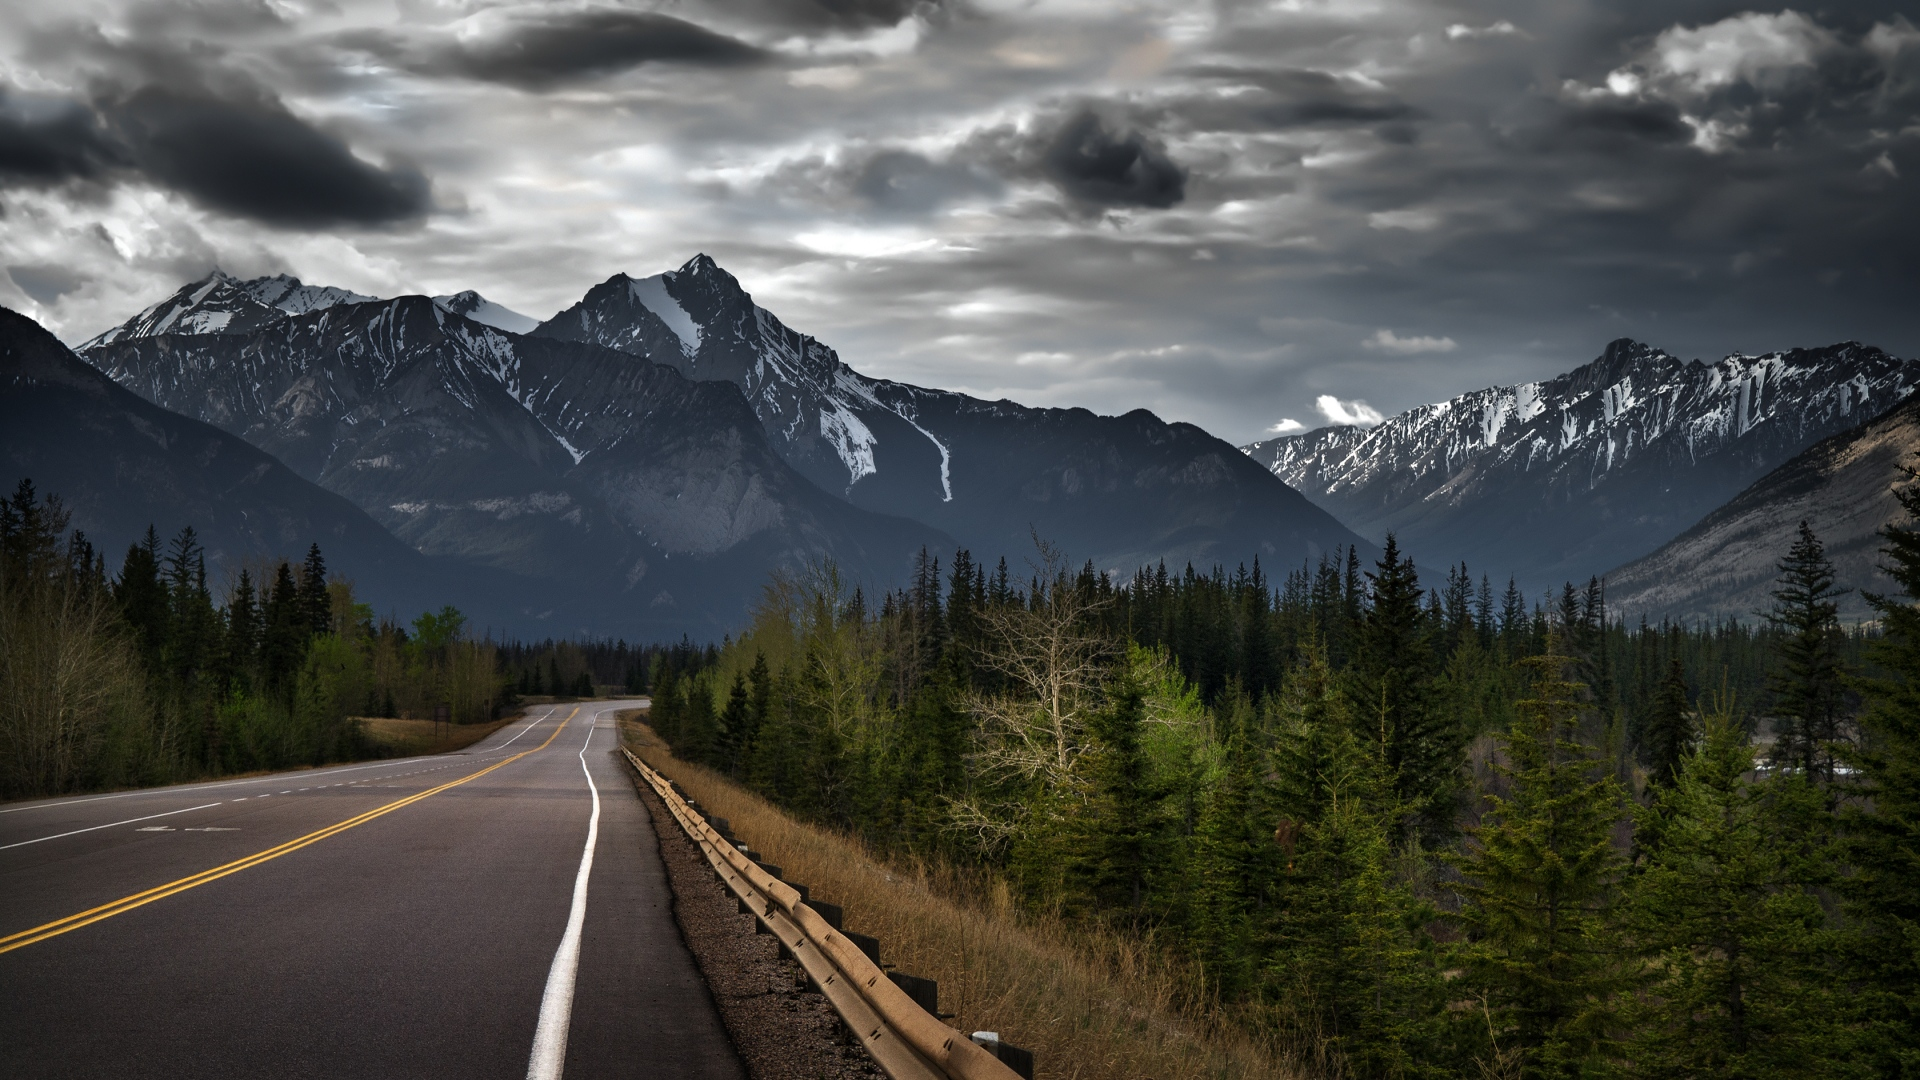 Canada mountain road wallpaper 61832 1920x1080 px for Wallpaper canada